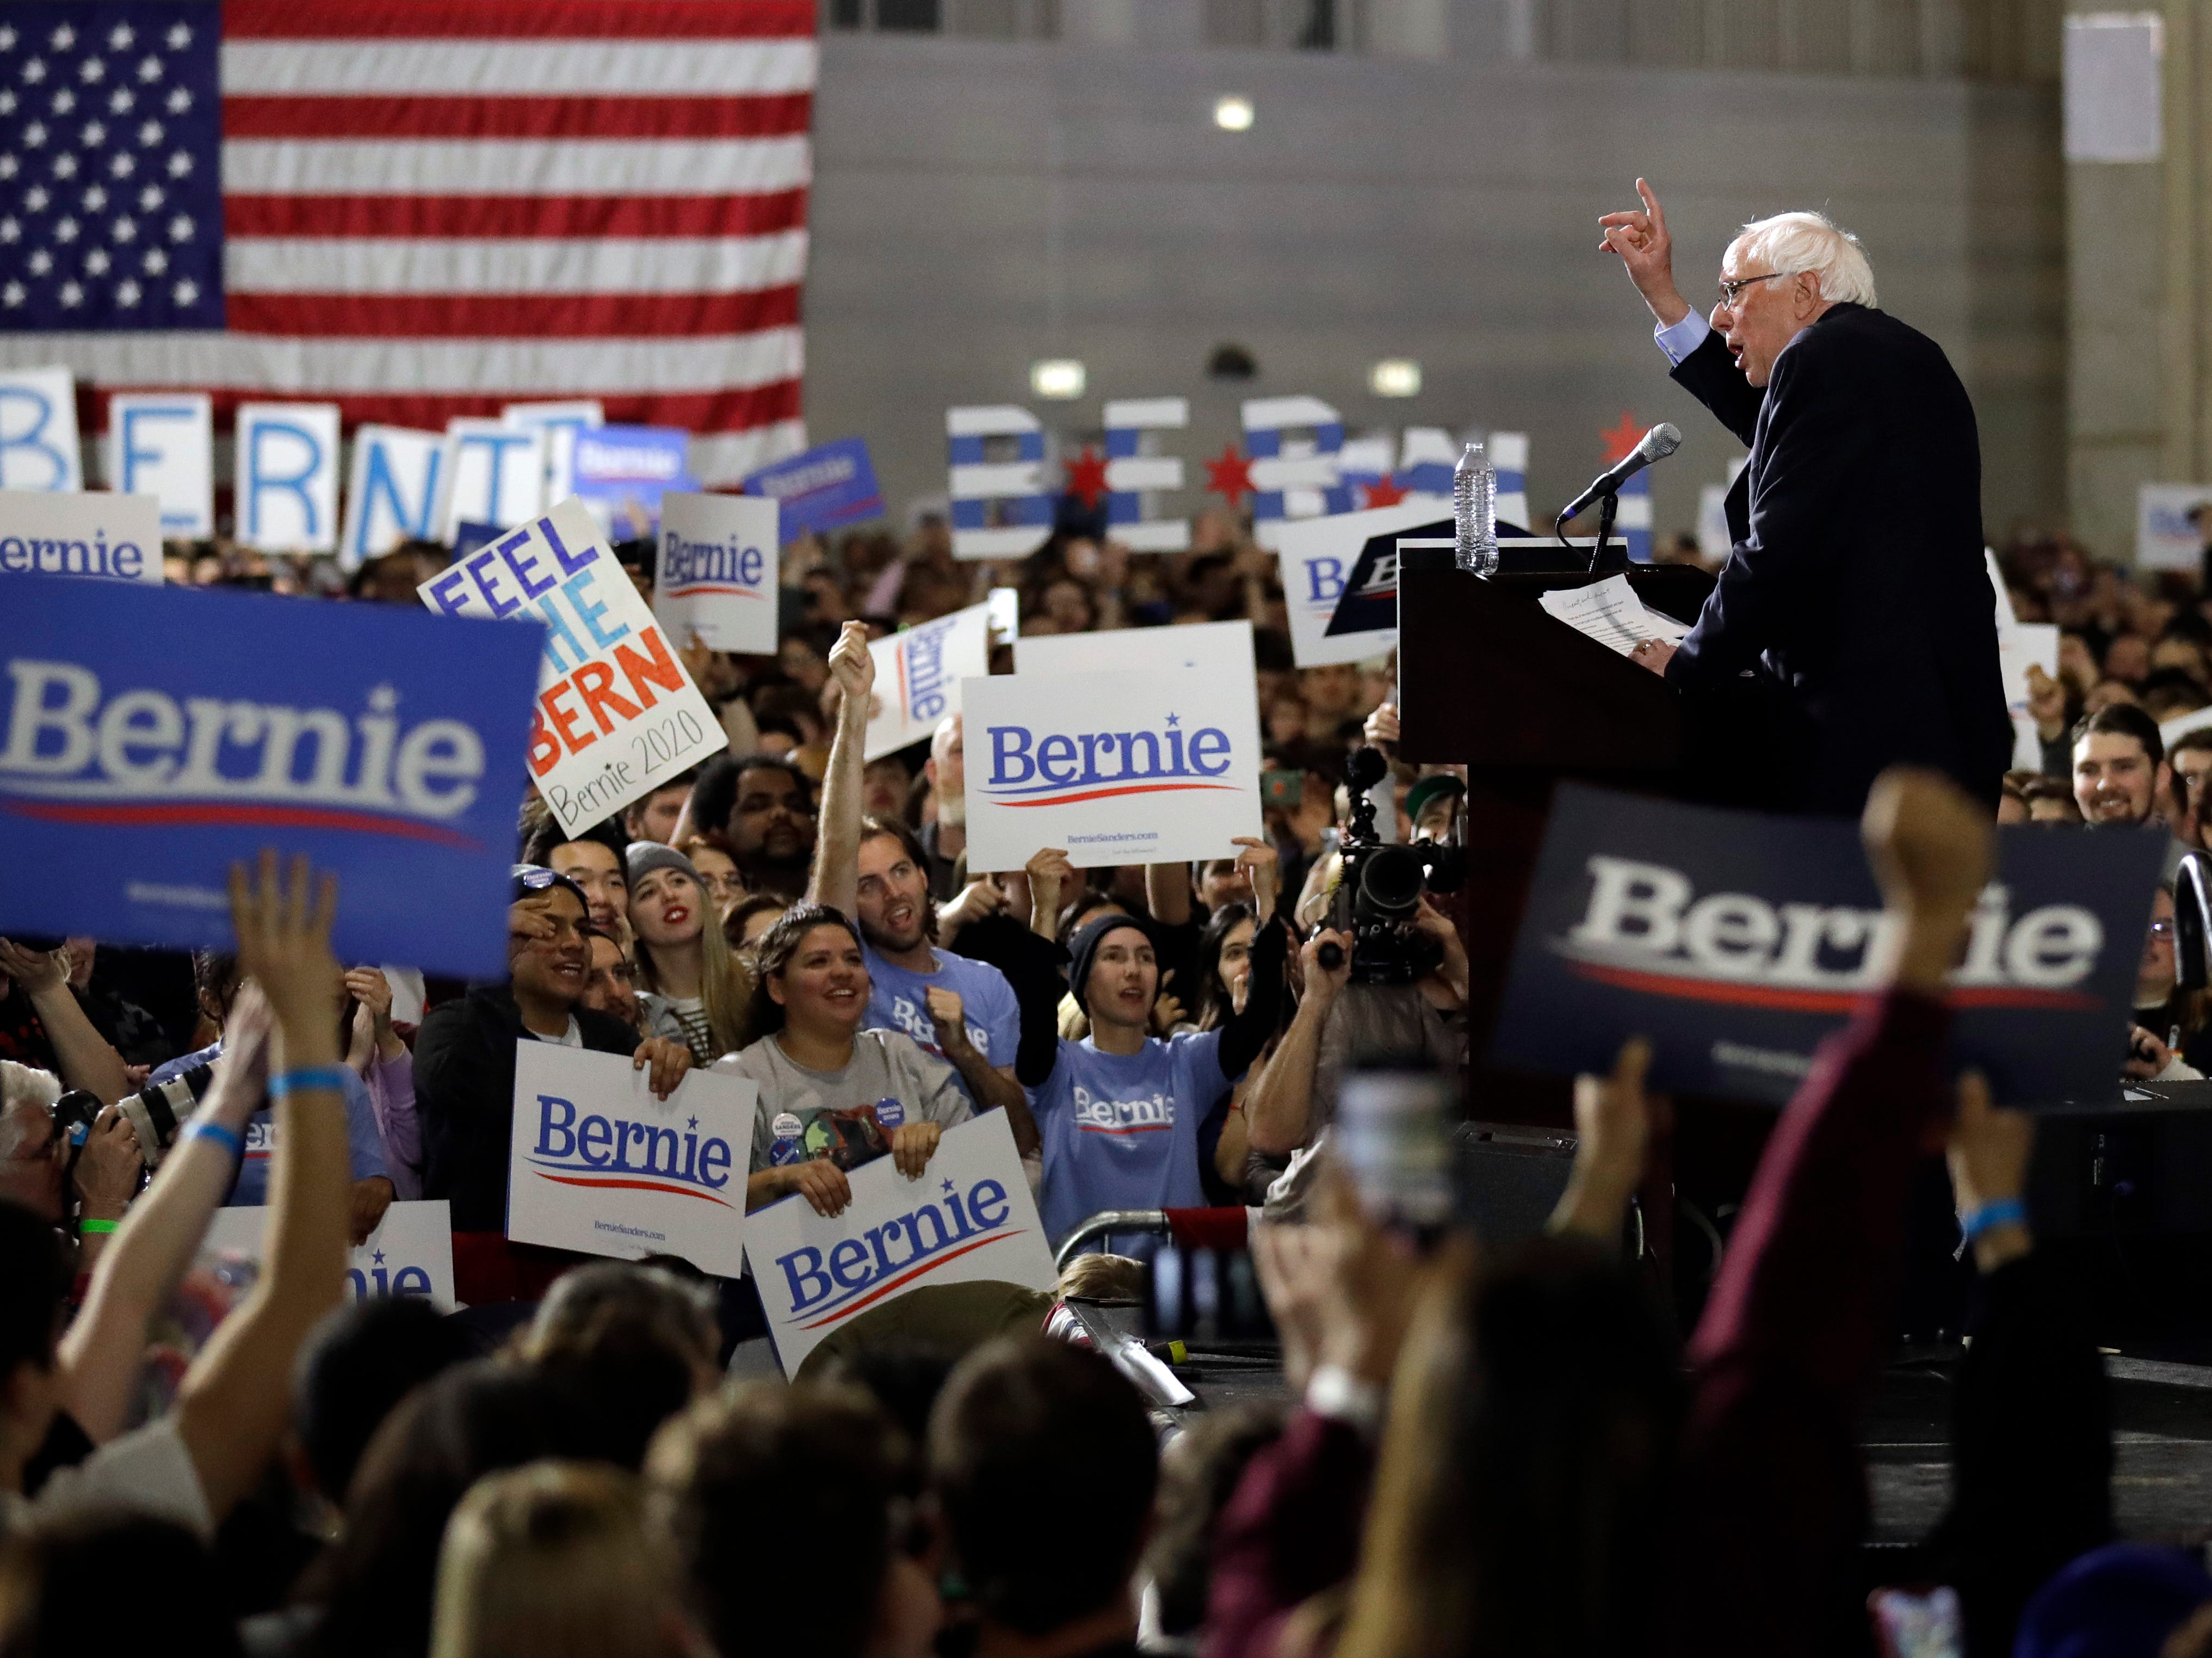 Sen. Bernie Sanders, I-Vt., speaks as he holds his 2020 presidential campaign at Navy Pier in Chicago, Sunday, March 3, 2019. Over the next several weeks, Sanders will travel to Iowa, New Hampshire, South Carolina, Nevada, and California. He will then return to Burlington, Vt., for the official launch of his campaign.